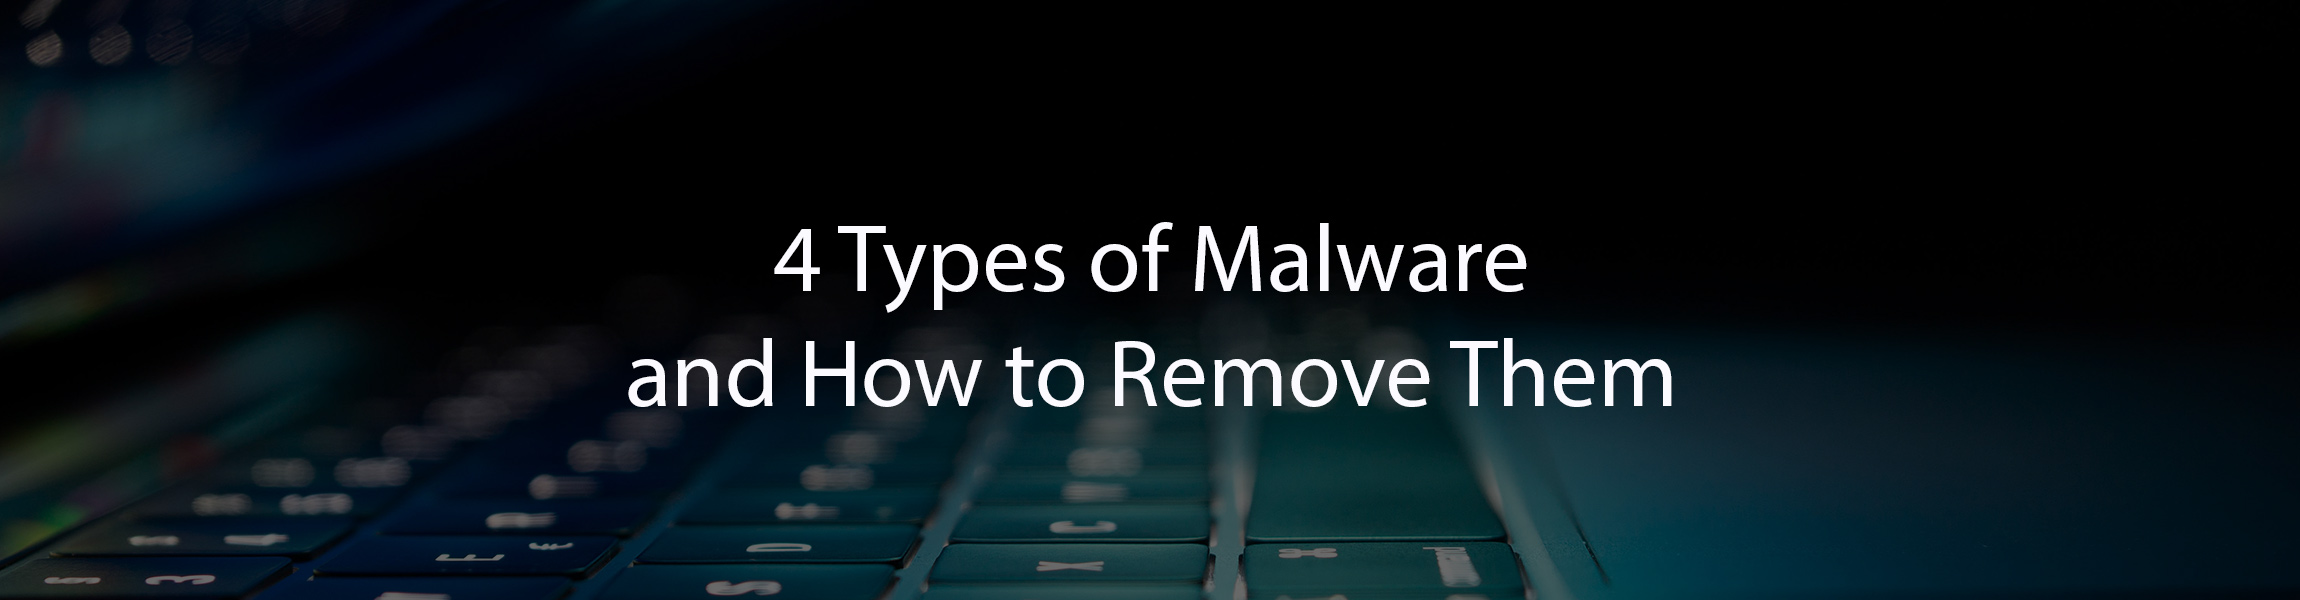 4 Types of Malware and How to Remove Them